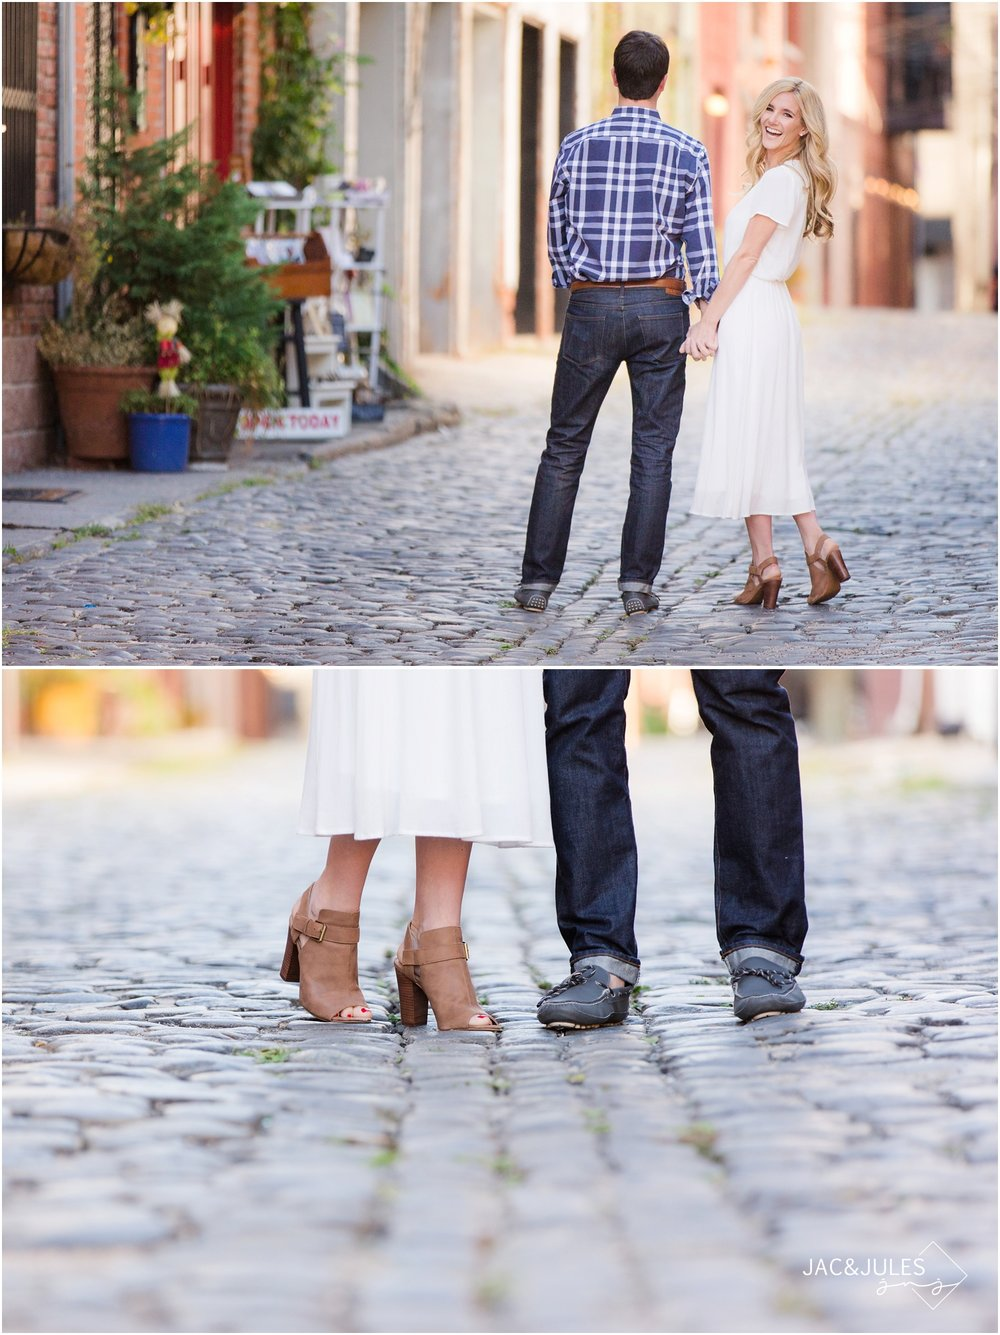 relaxed engagement photos on cobblestone street in hoboken, nj.